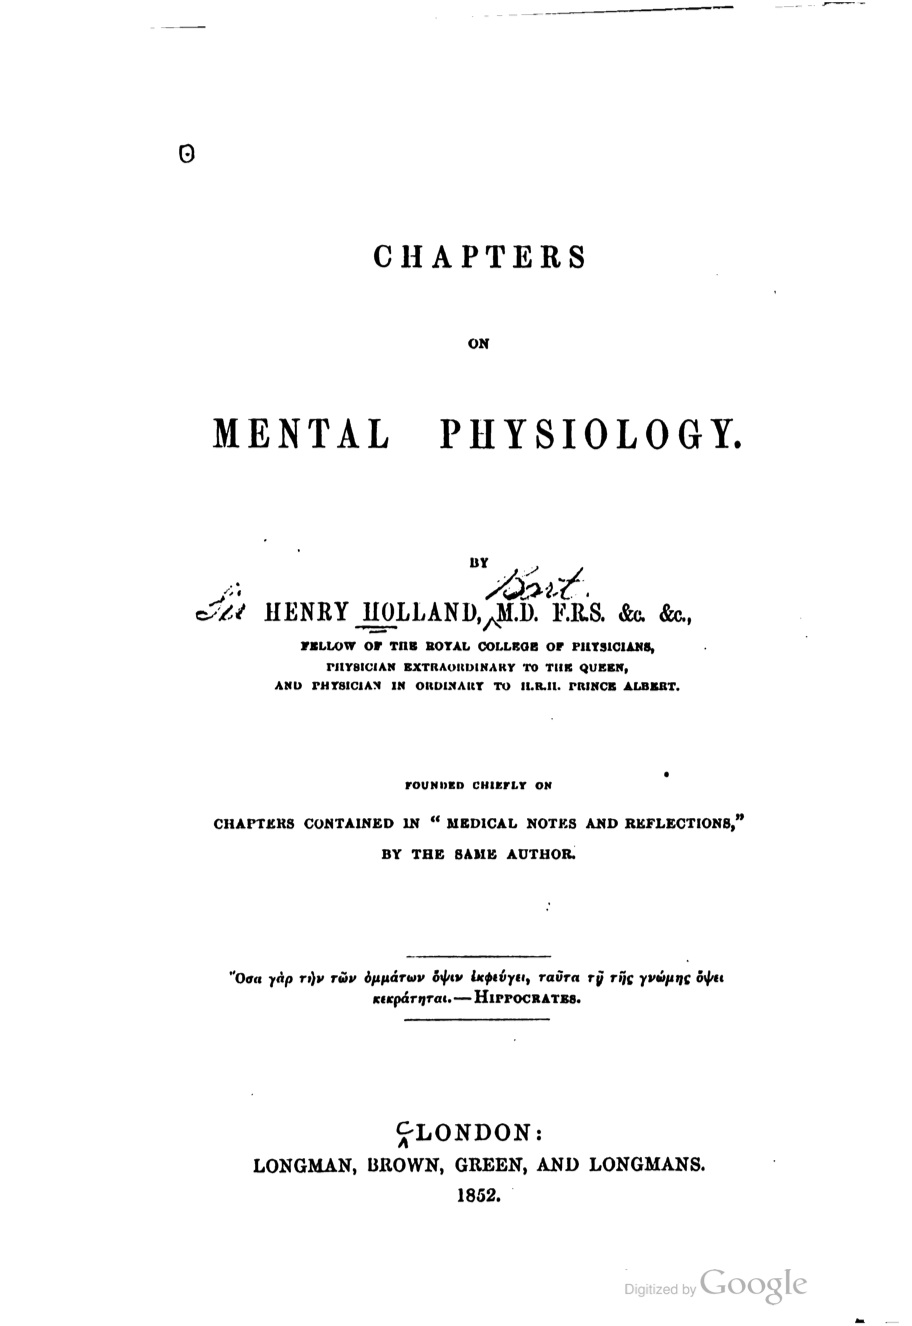 Chapters on Mental Physiology